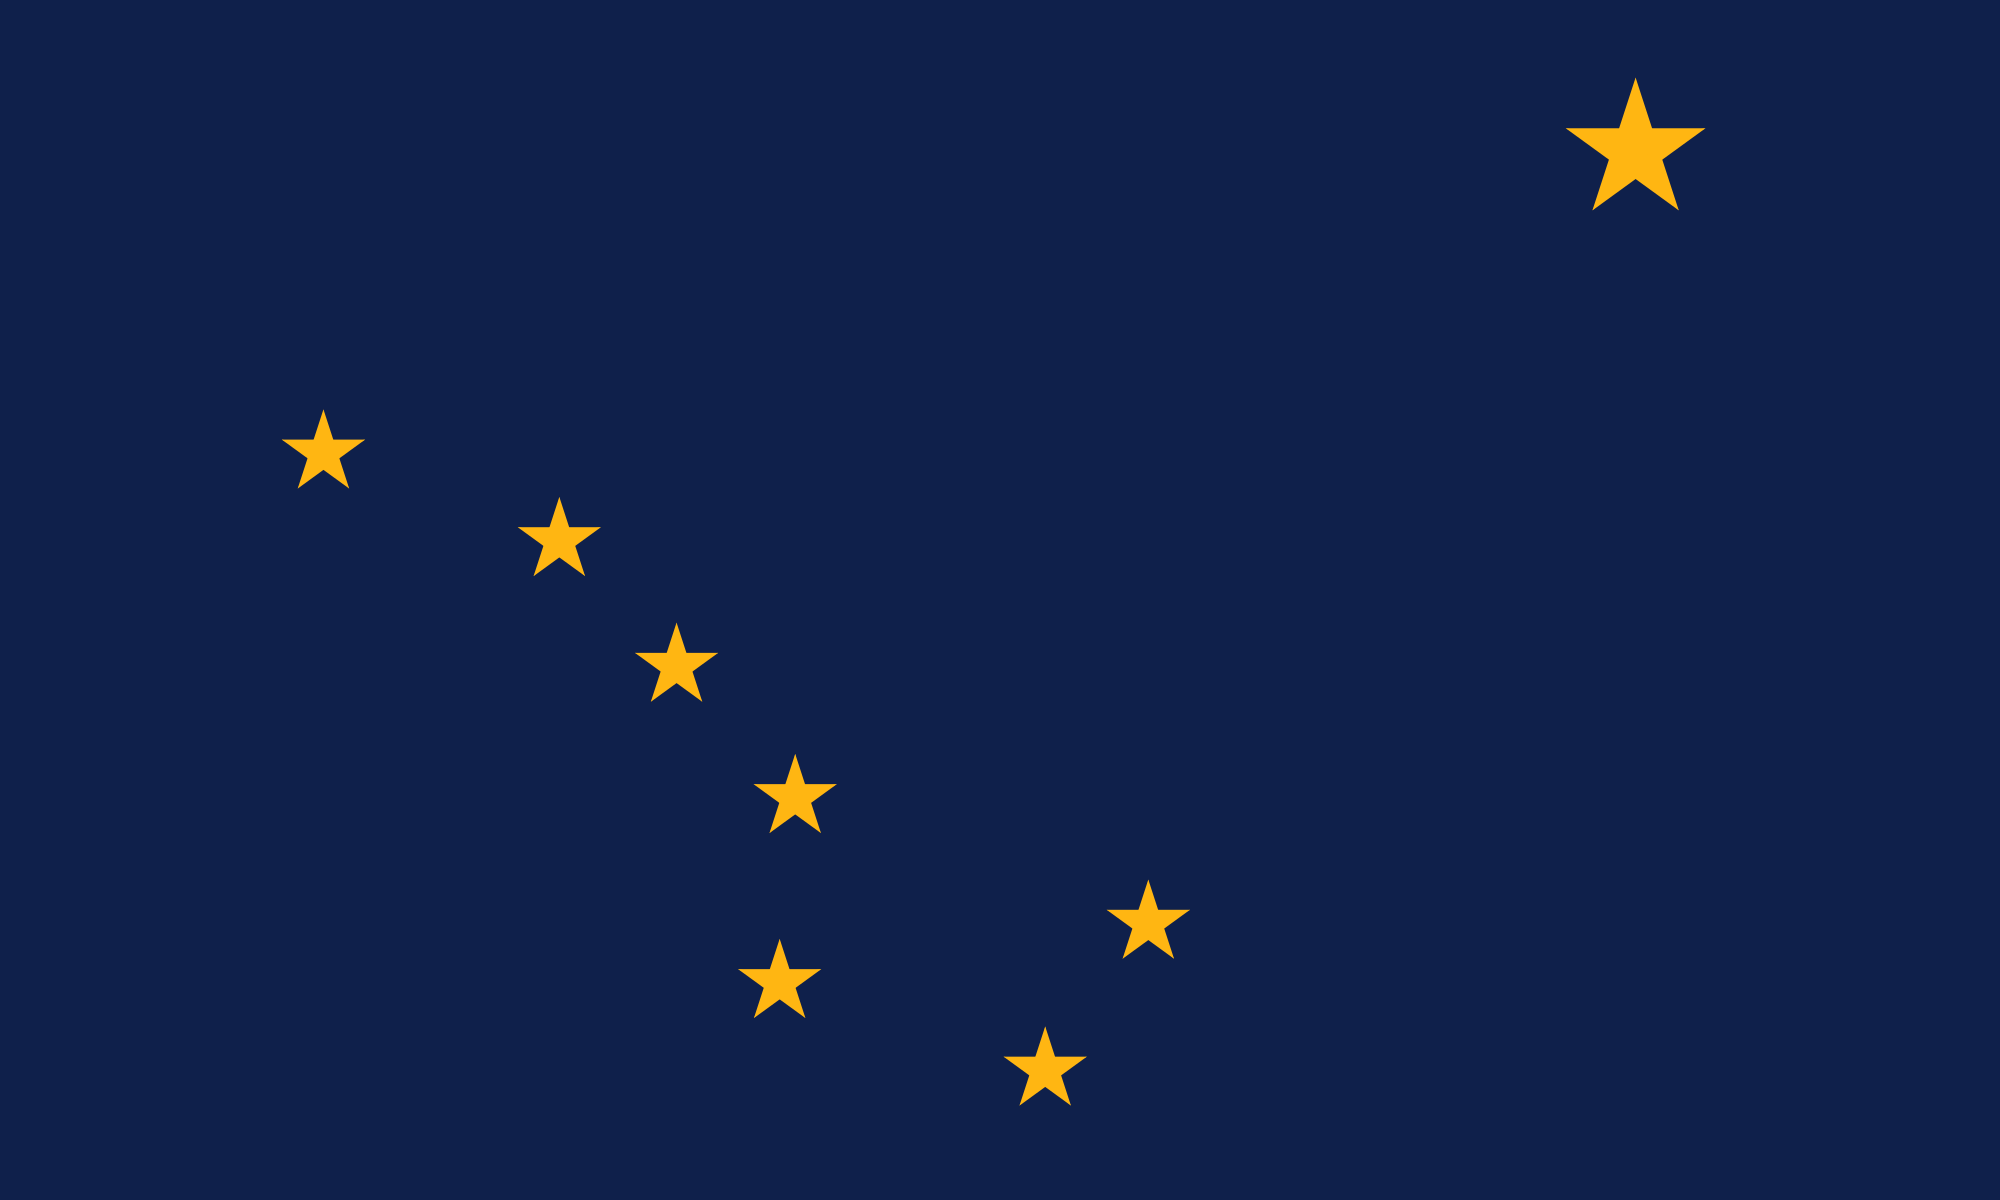 Alaska flag | Wintergreen